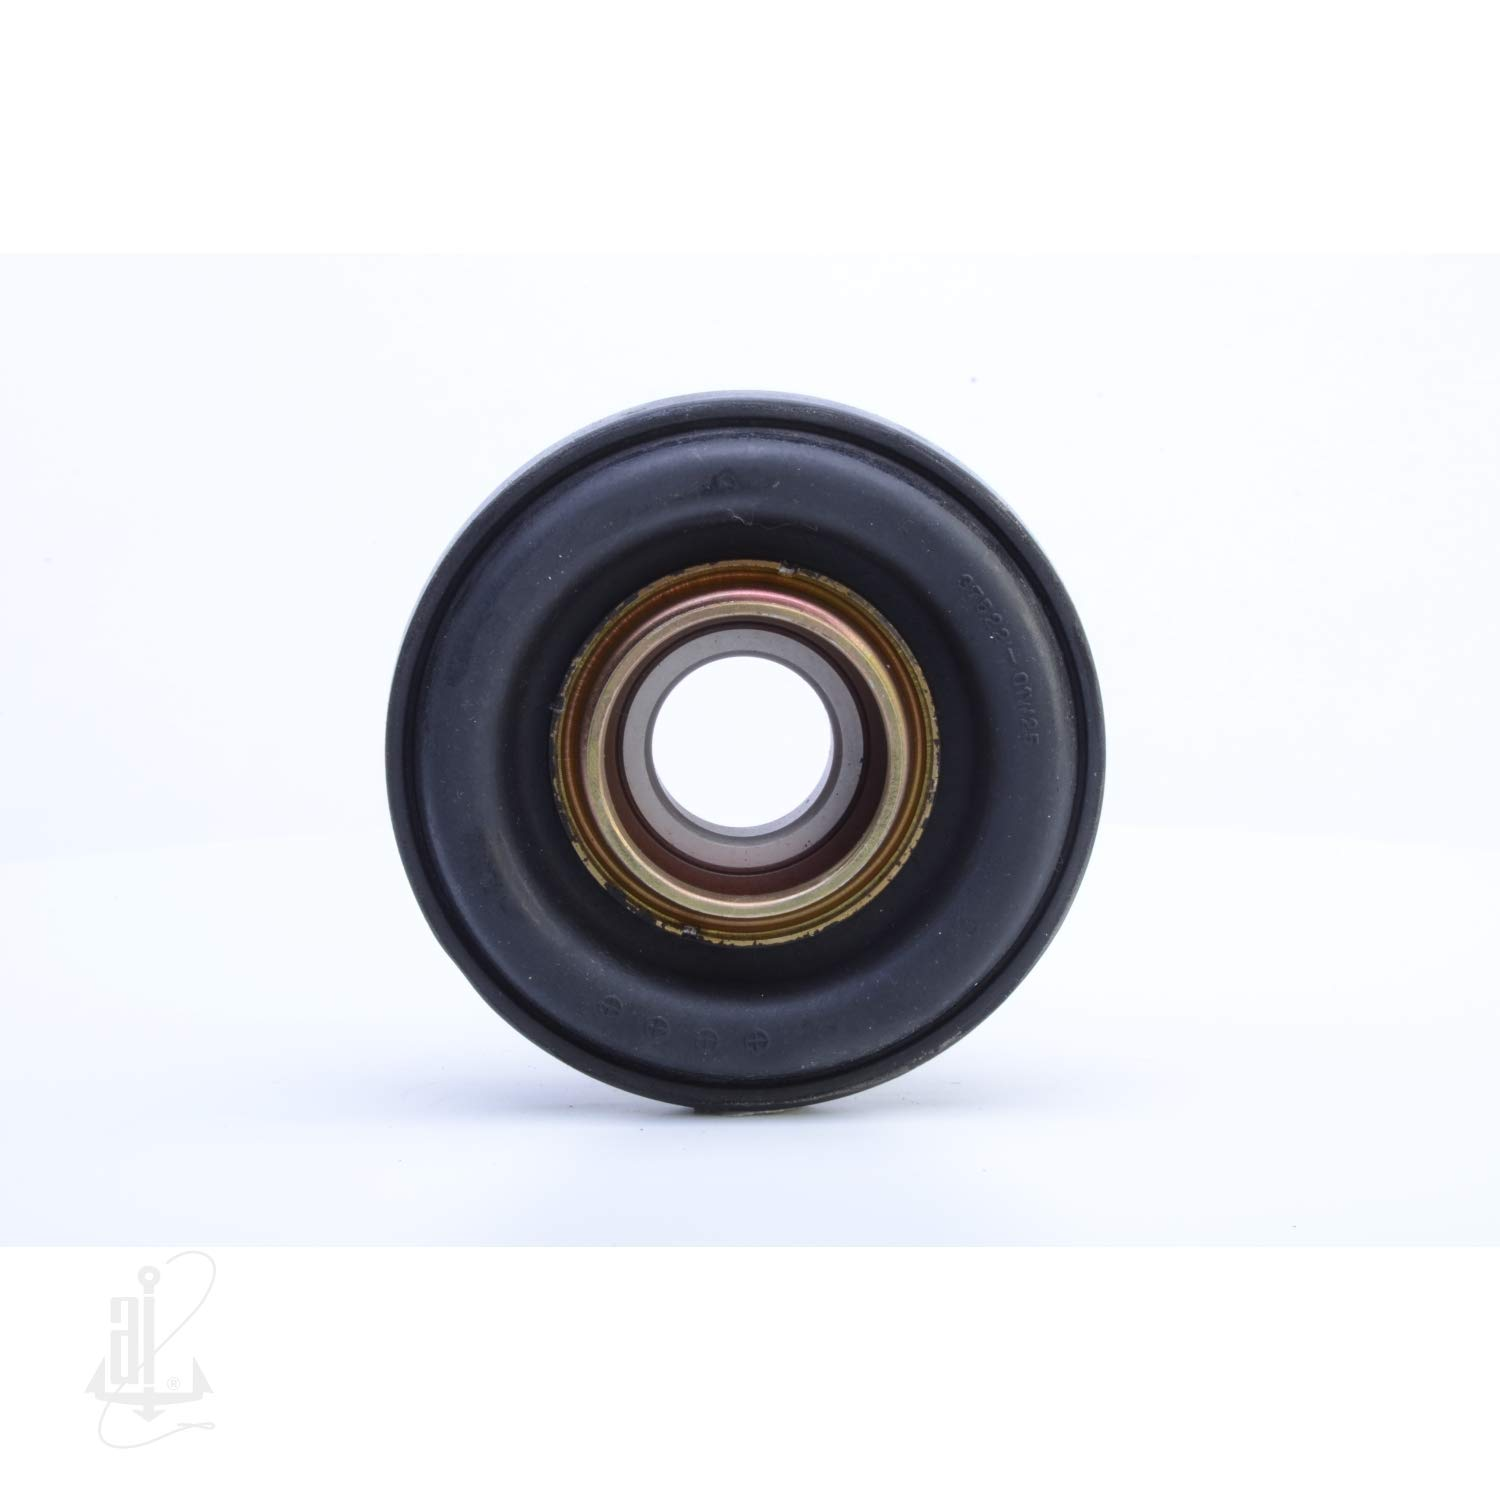 Japan Bearing Well Auto Center Support Bearing 95-04 Toyota Tacoma 2WD//4WD 95-98 Toyota T-100 2WD//4WD 00-06 Tundra